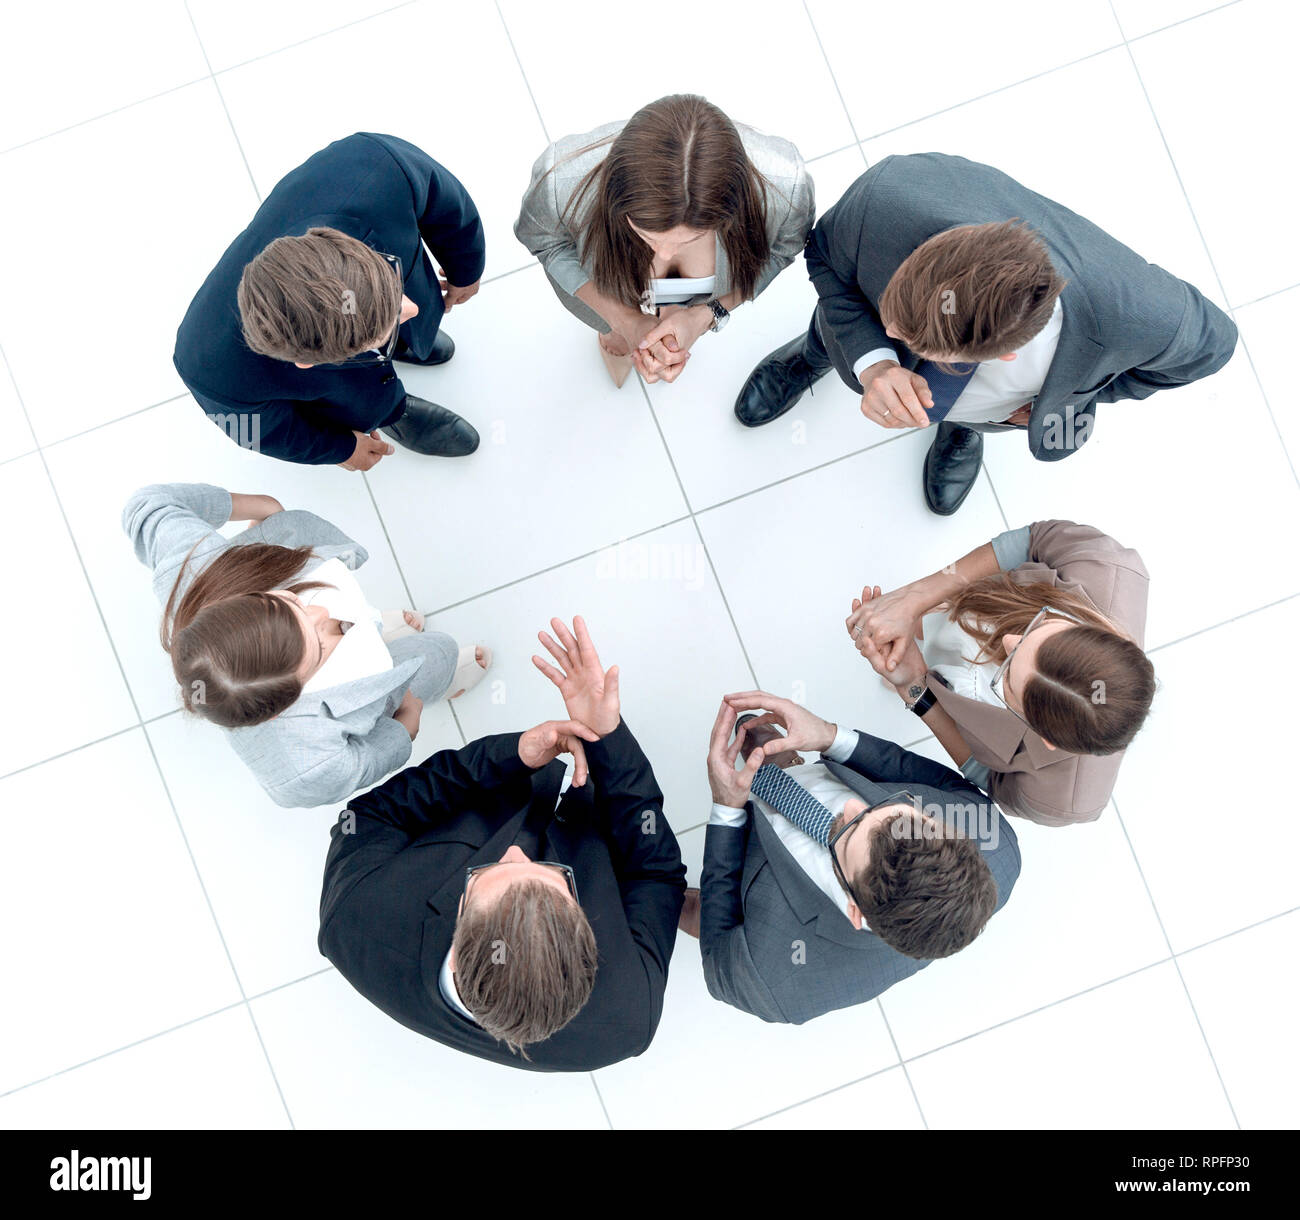 group of employees discussing something standing in a circle - Stock Image